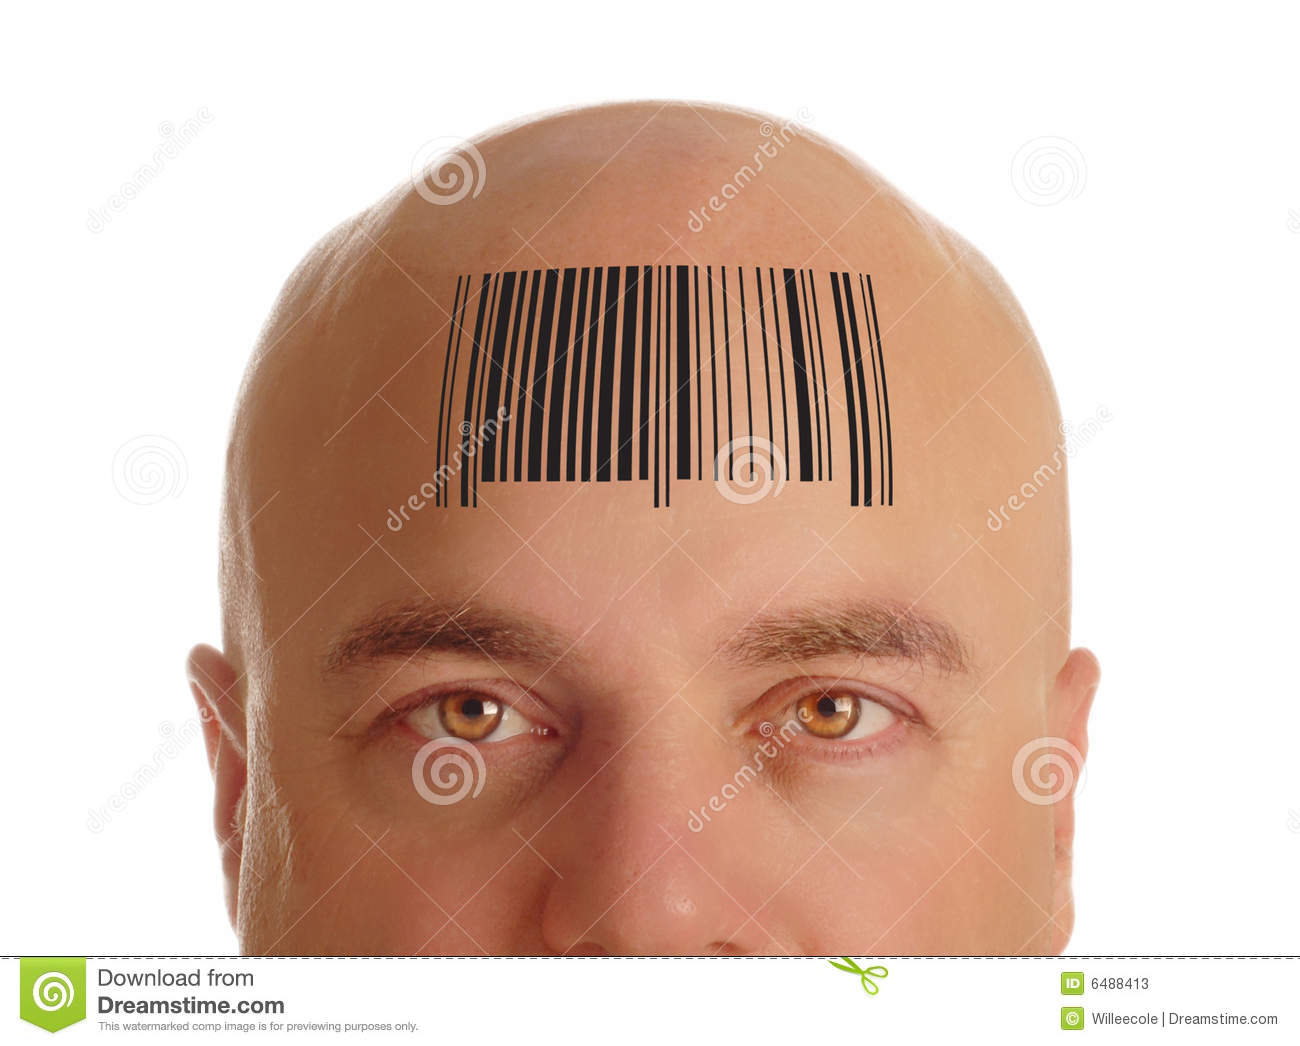 Bald head with barcode